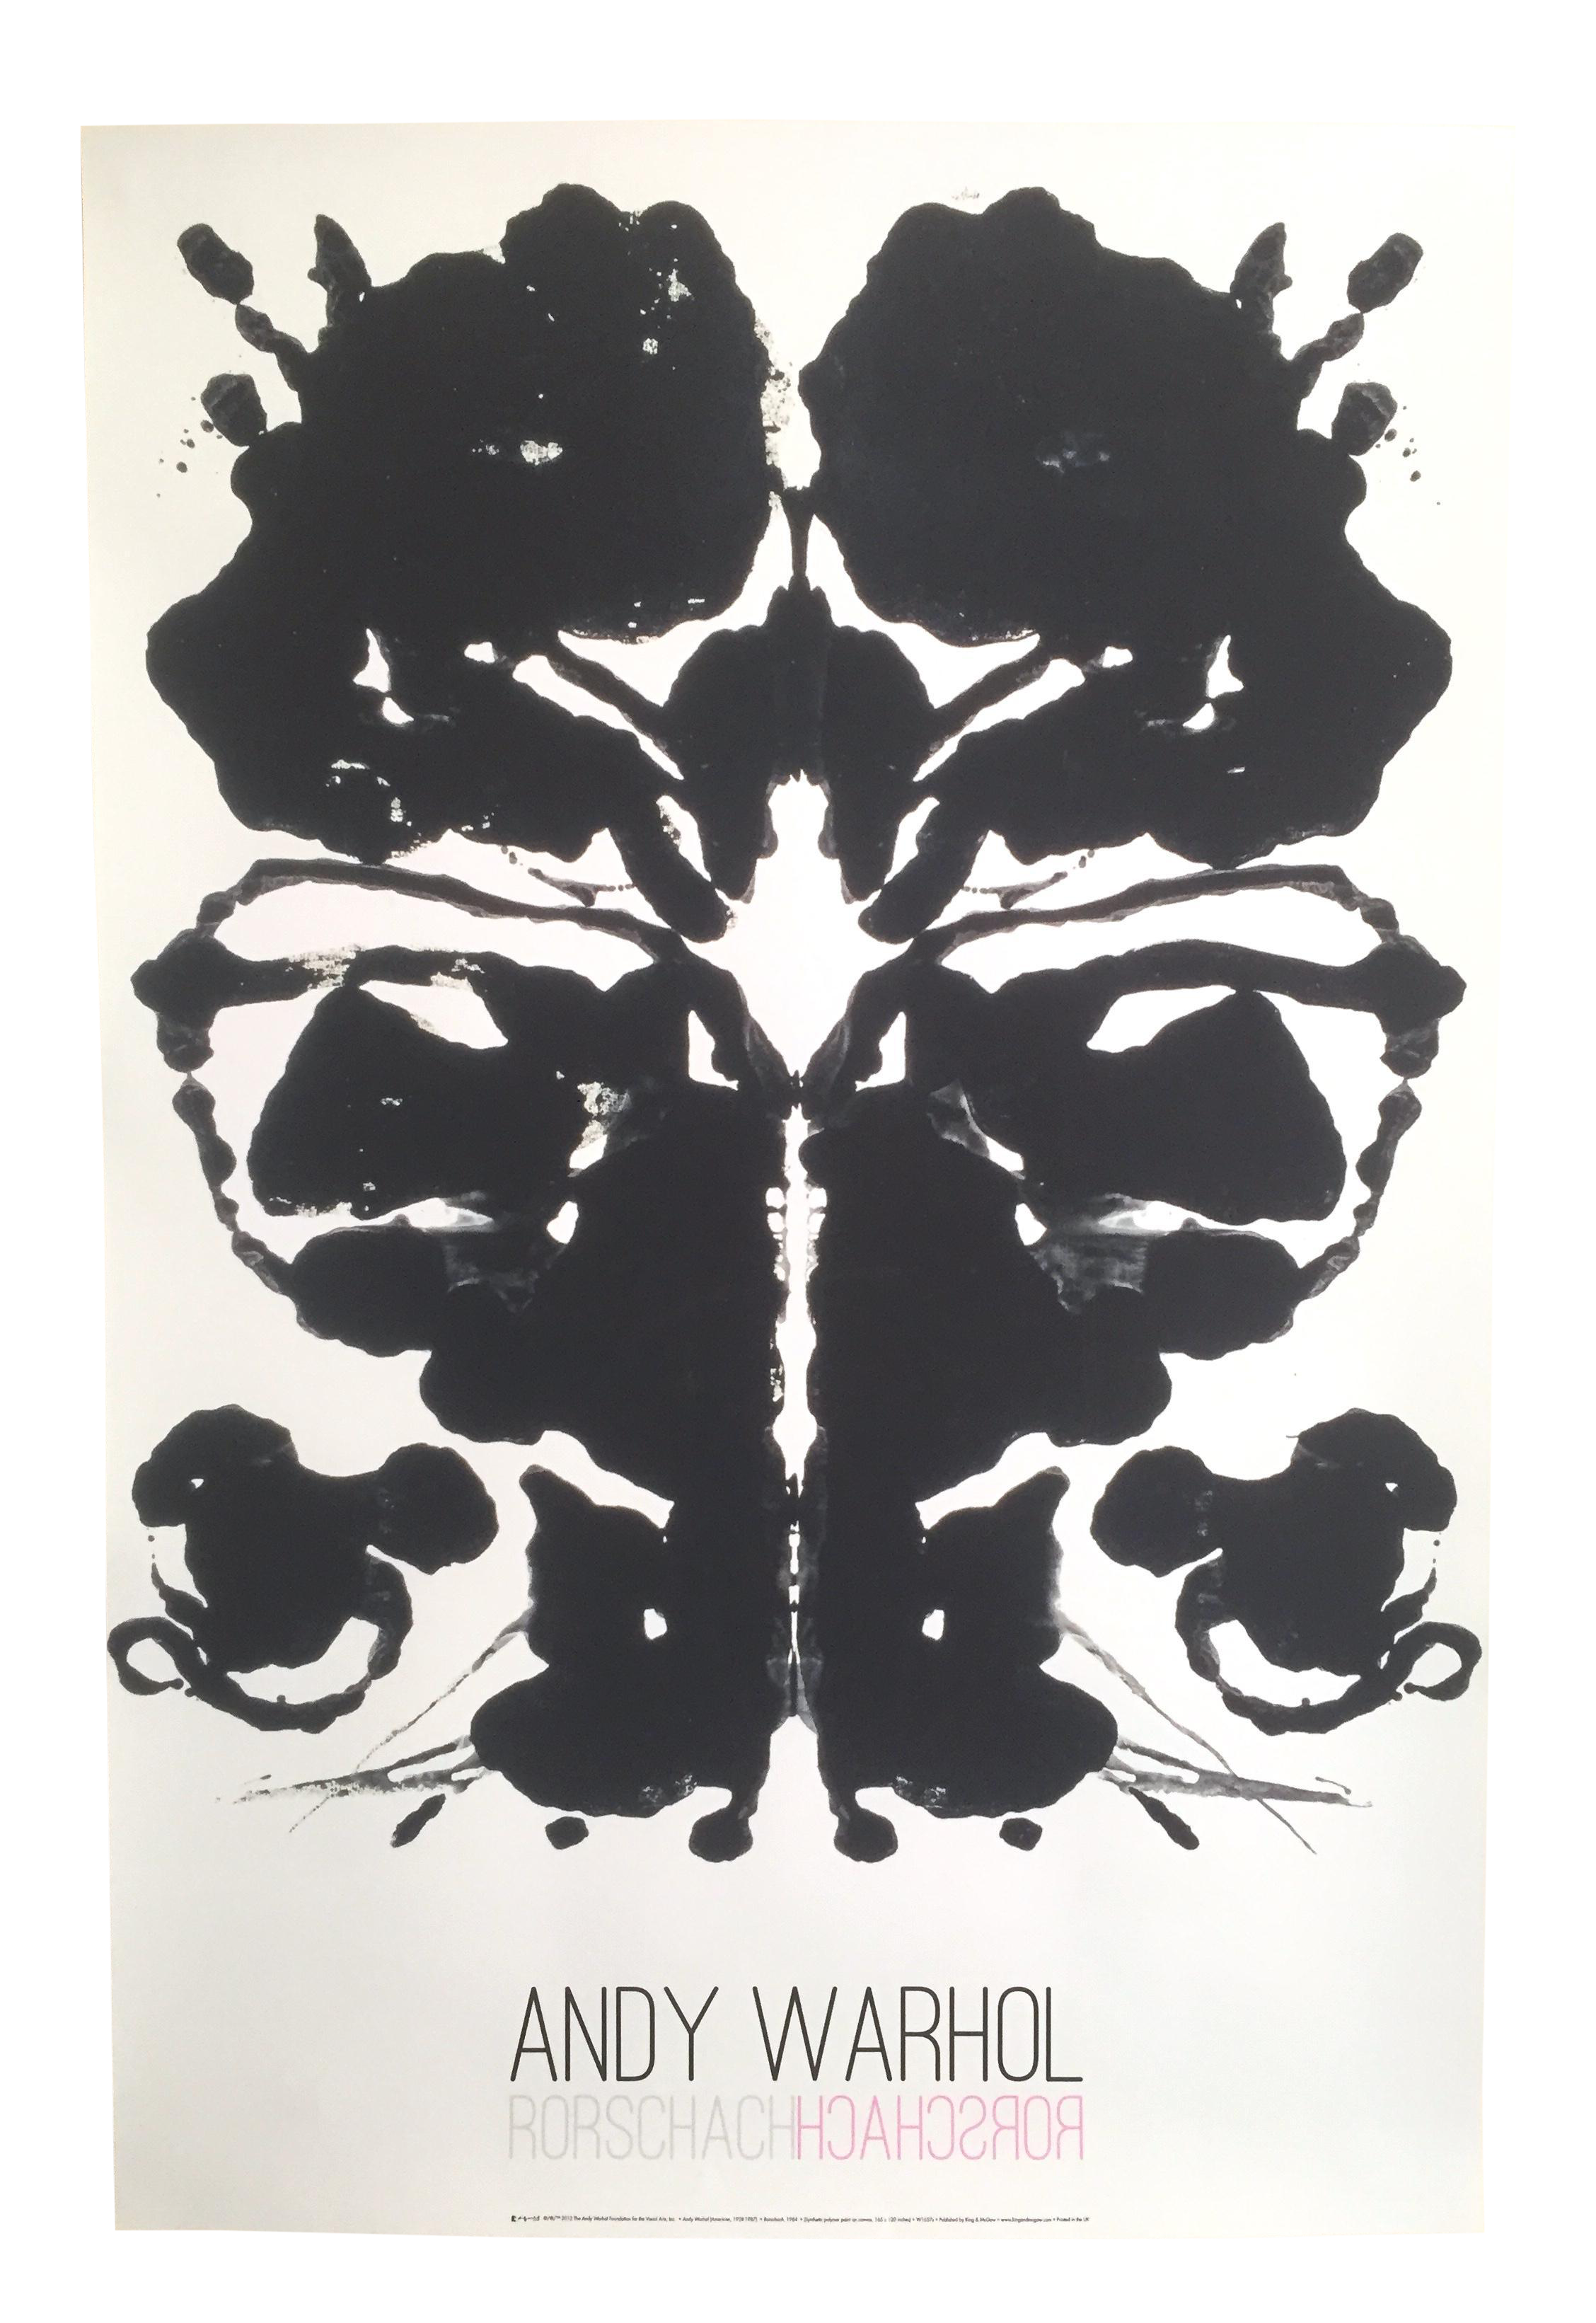 Andy warhol original offset. Rorschach drawing picture freeuse